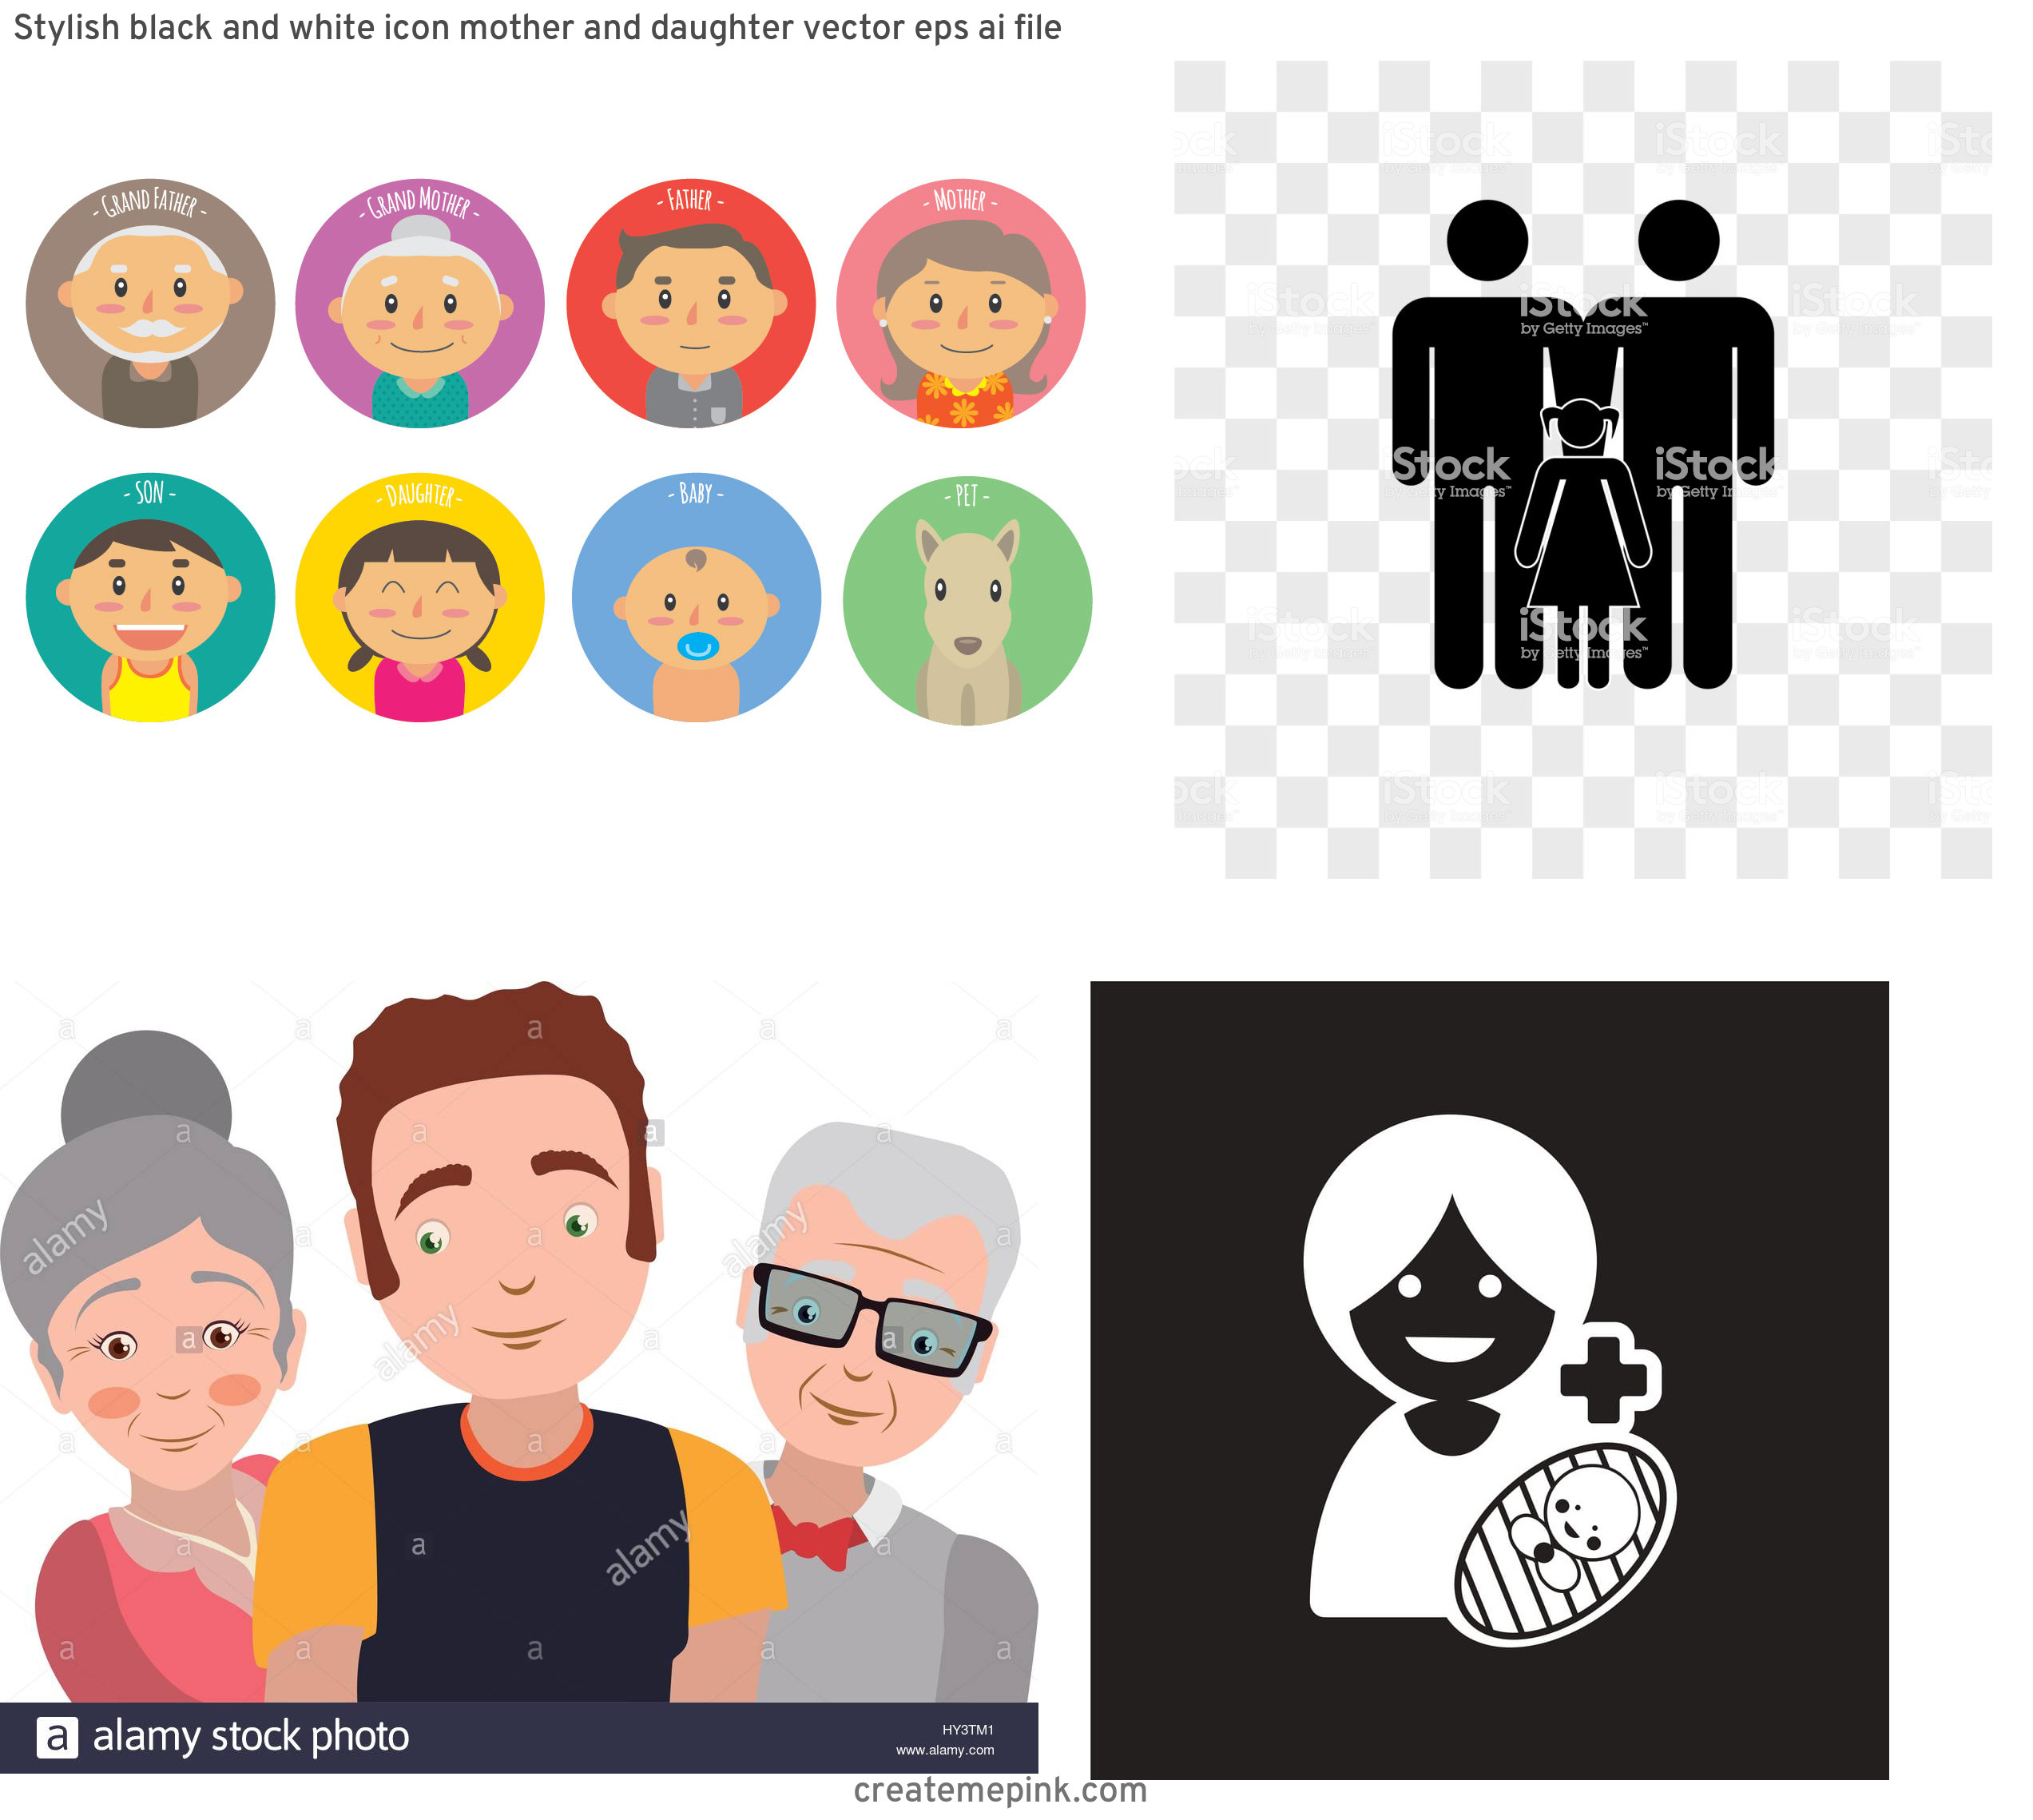 Daughter Vector Icons: Stylish Black And White Icon Mother And Daughter Vector Eps Ai File